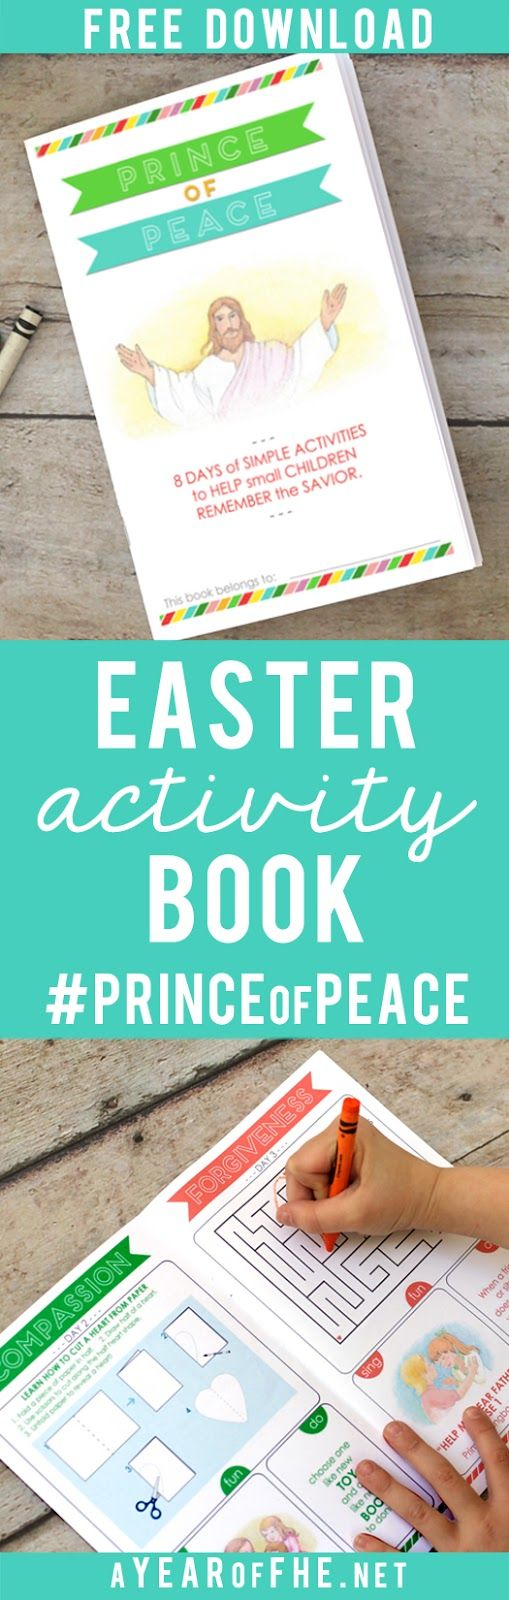 84 best Primary images on Pinterest | Church ideas, Lds primary ...